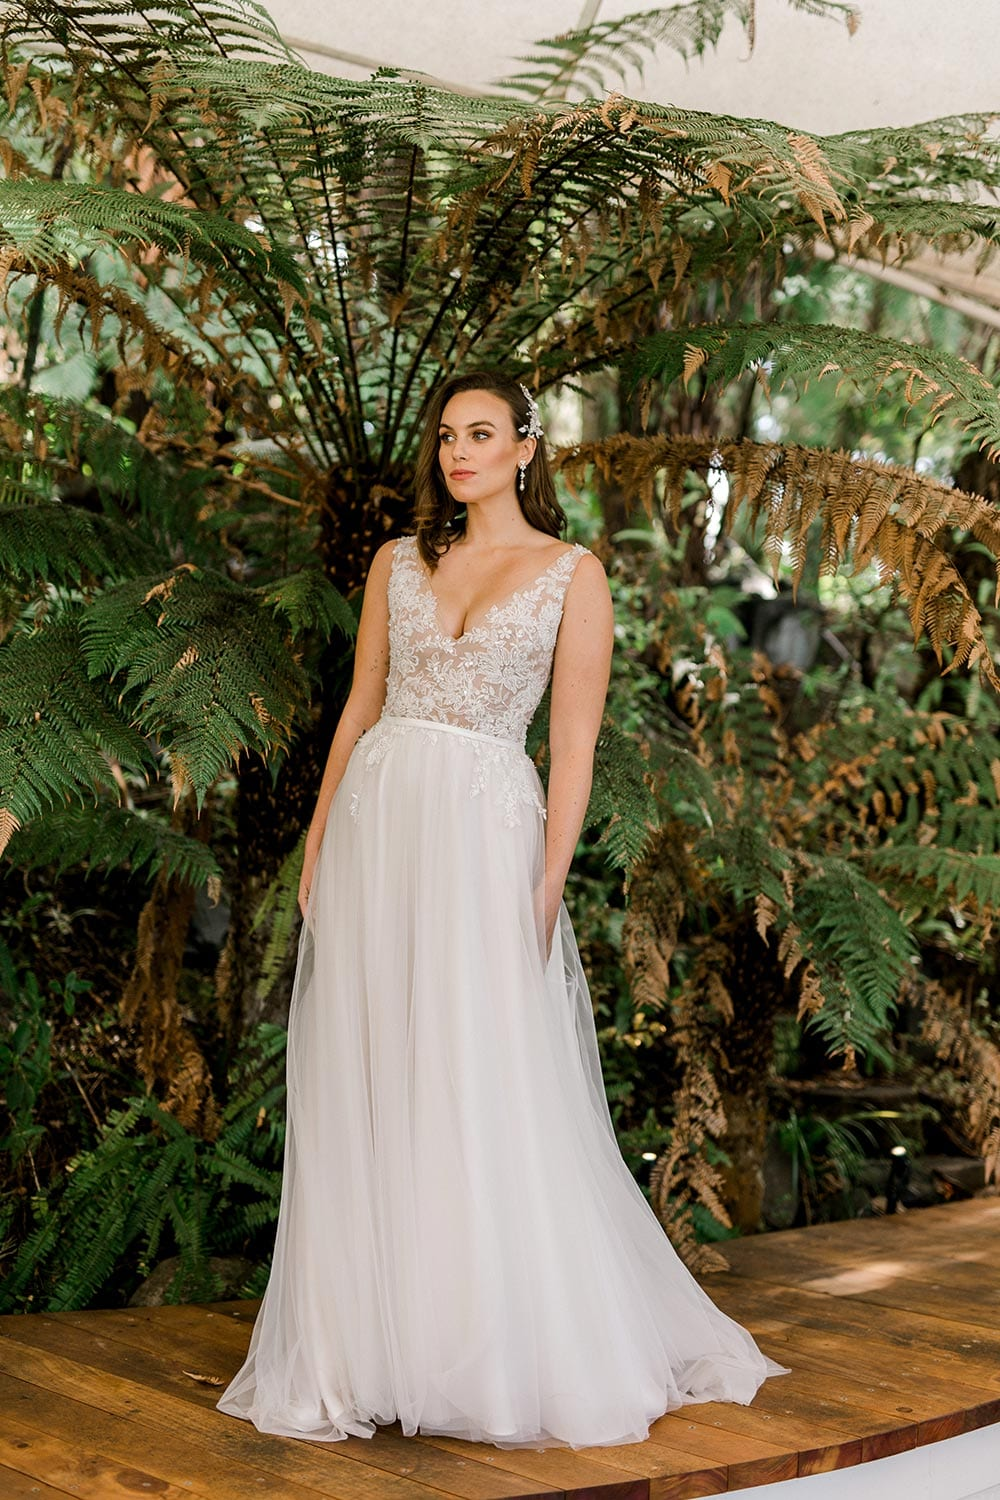 Vivian Wedding gown from Vinka Design - A stunning gown with a deep V-neckline on both the front & back. Fitted semi-sheer nude bodice embellished with a beaded floral lace, a soft layered tulle skirt. Worn in conservatory with fern background, dress flowing to the ground.